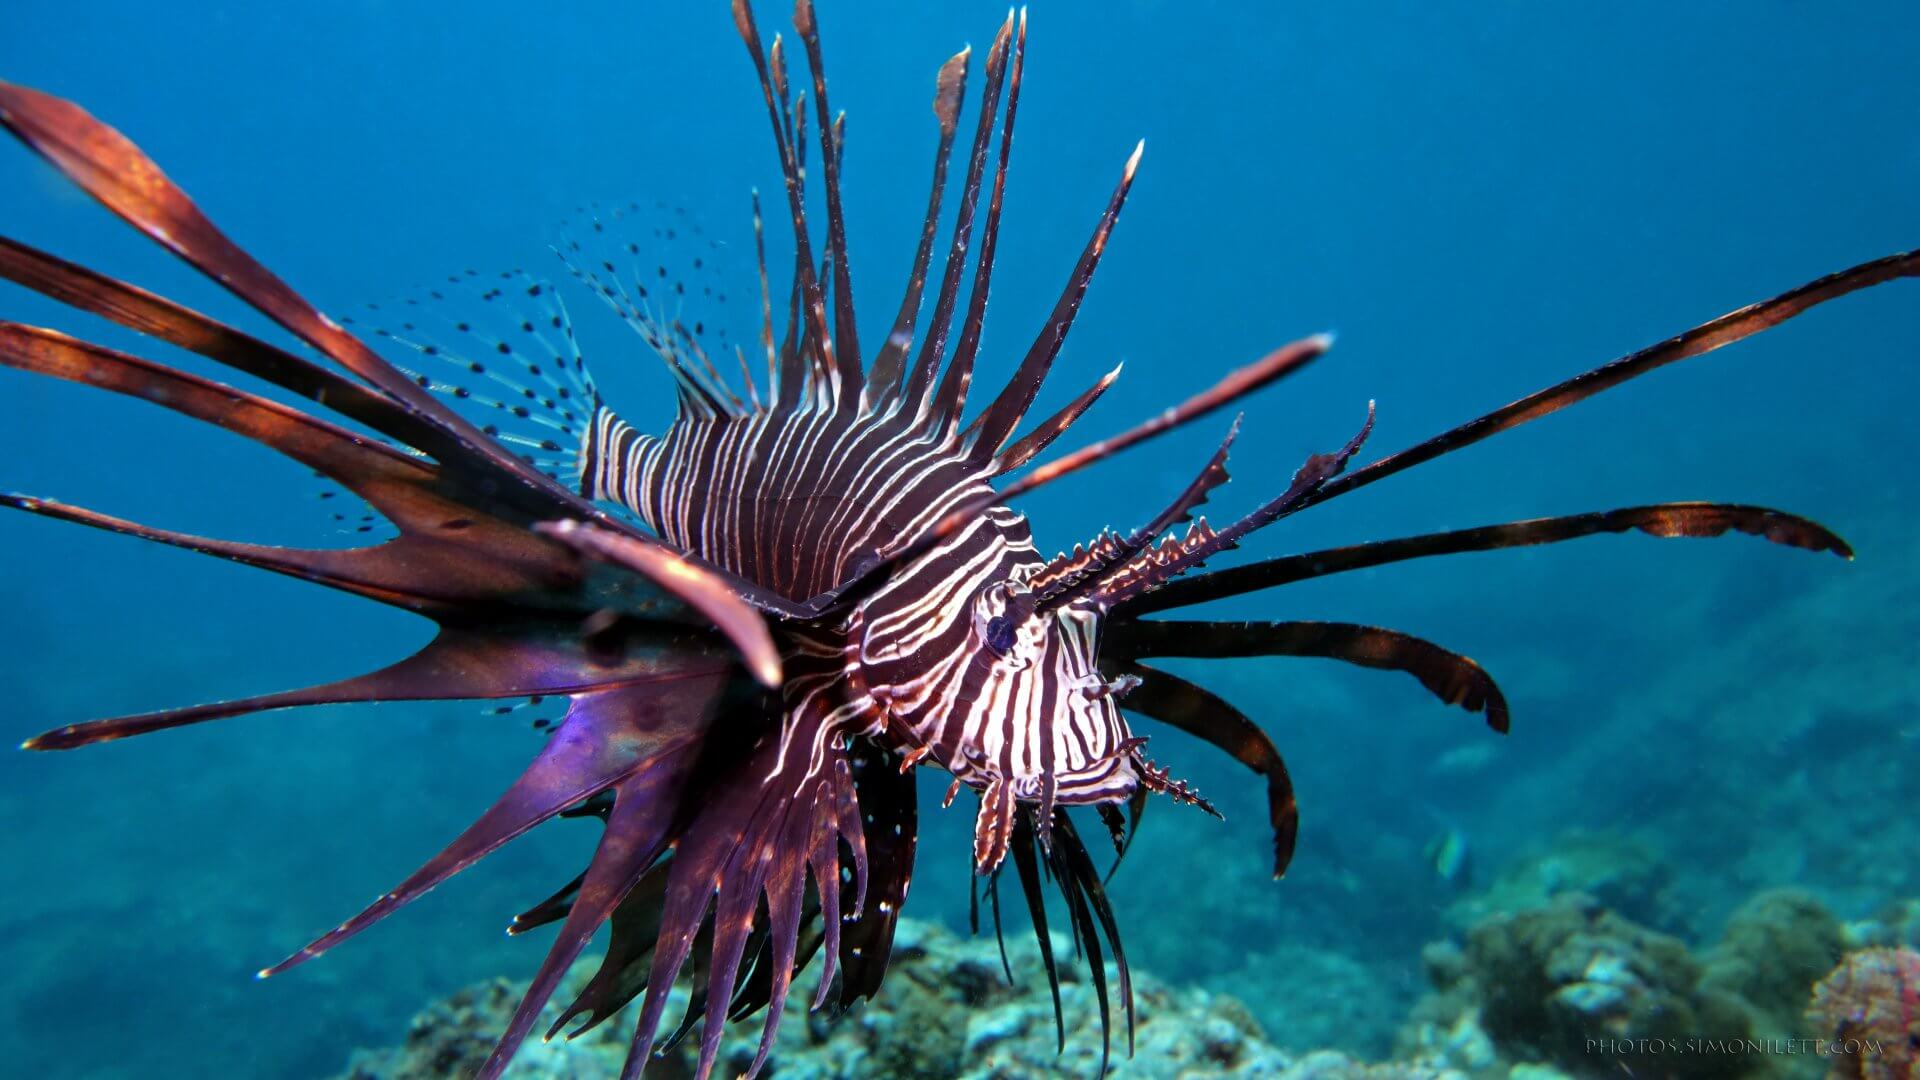 Lionfish invades Mexico: A (different) tale of controversial immigration